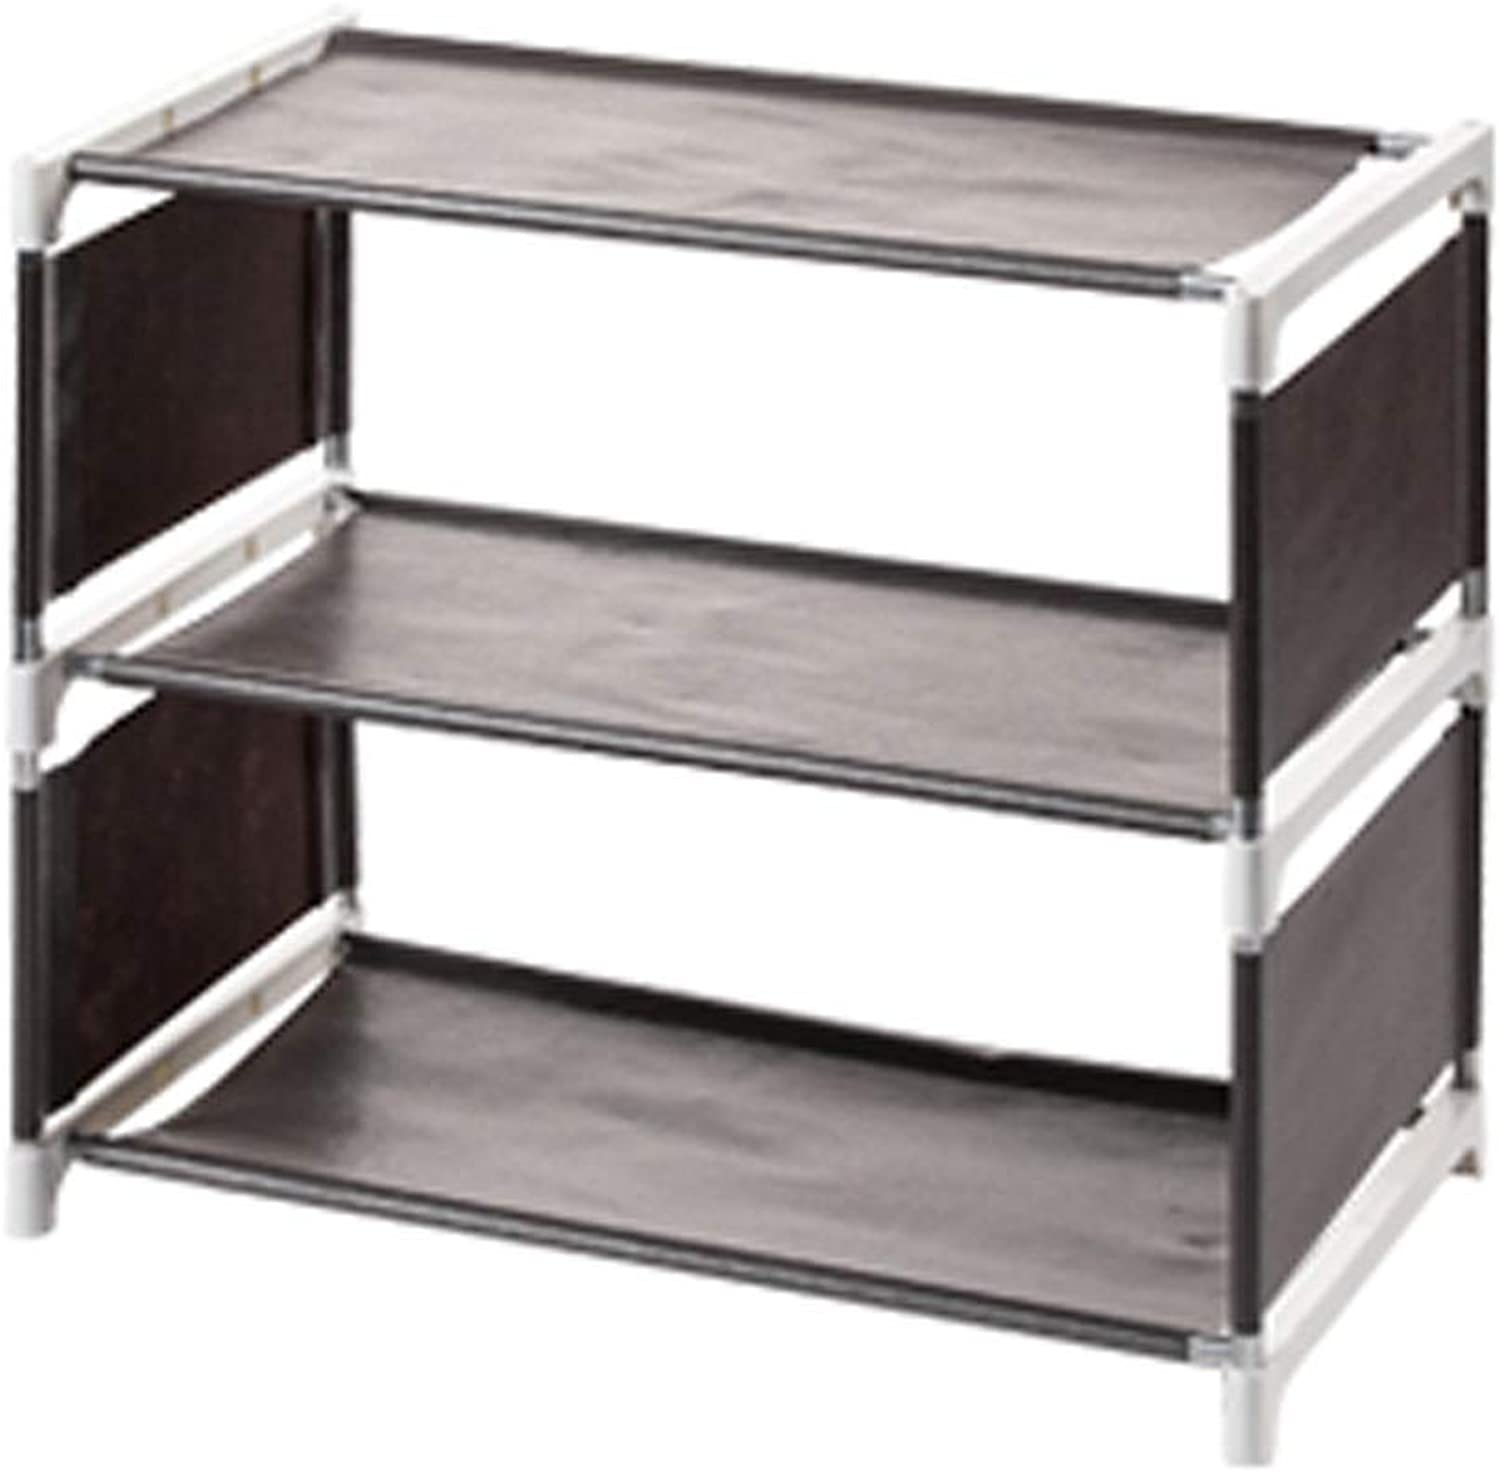 Stacking shoes Rack Organizer Over The Door, Screw-in Leveling Feet Narrow shoes Stand Storage Shelves Entryway Space Saving, Non-Woven Fabric shoes Tower (color   Coffee, Size   3 Tier)